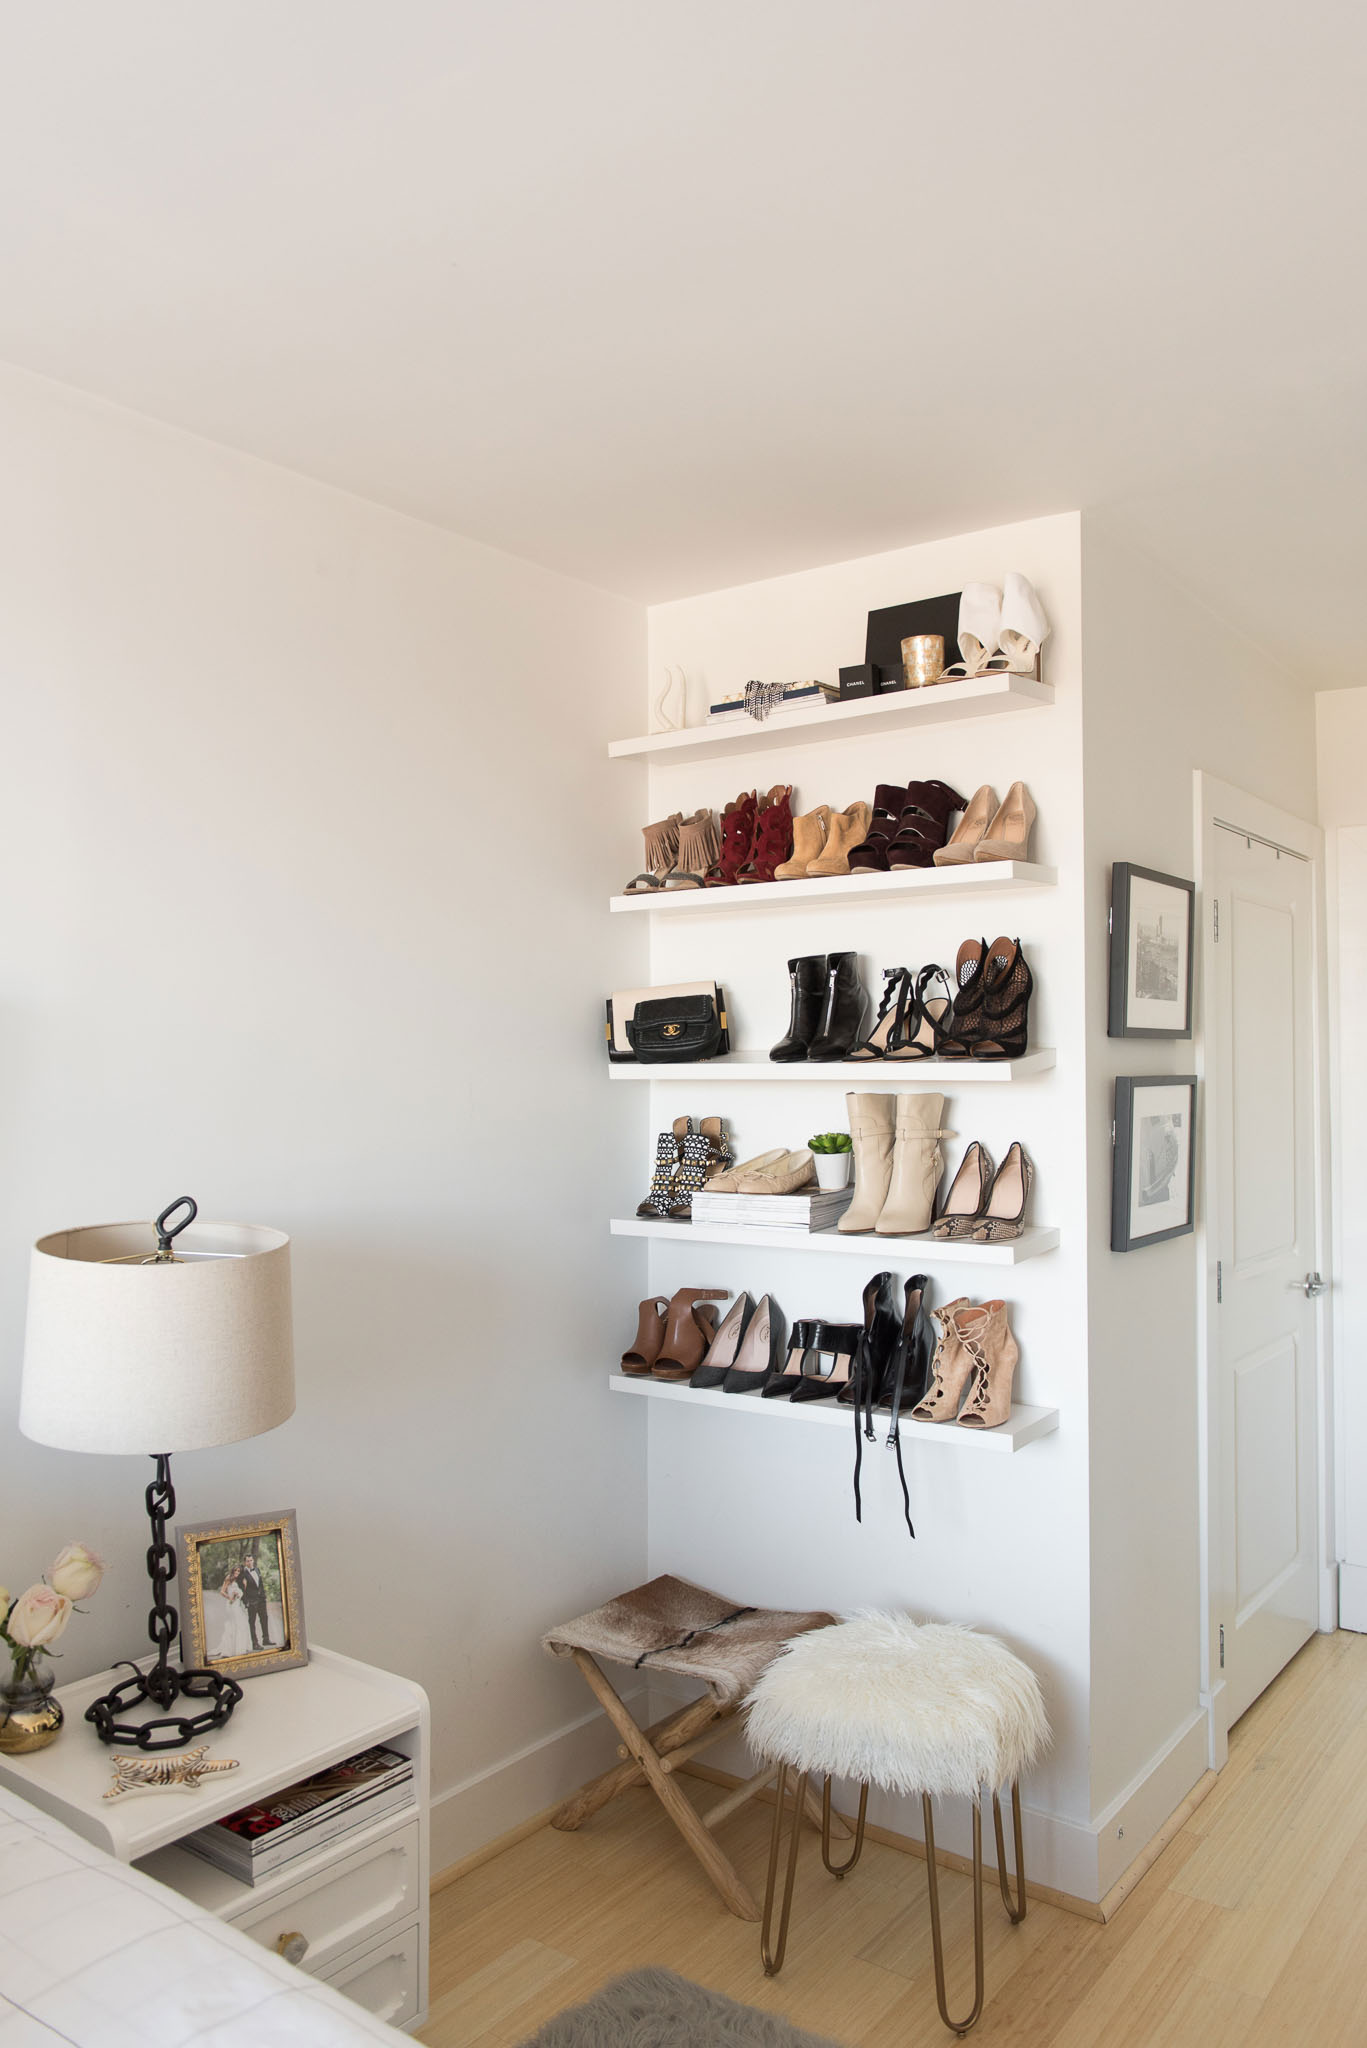 Bedroom Shoe Shelf